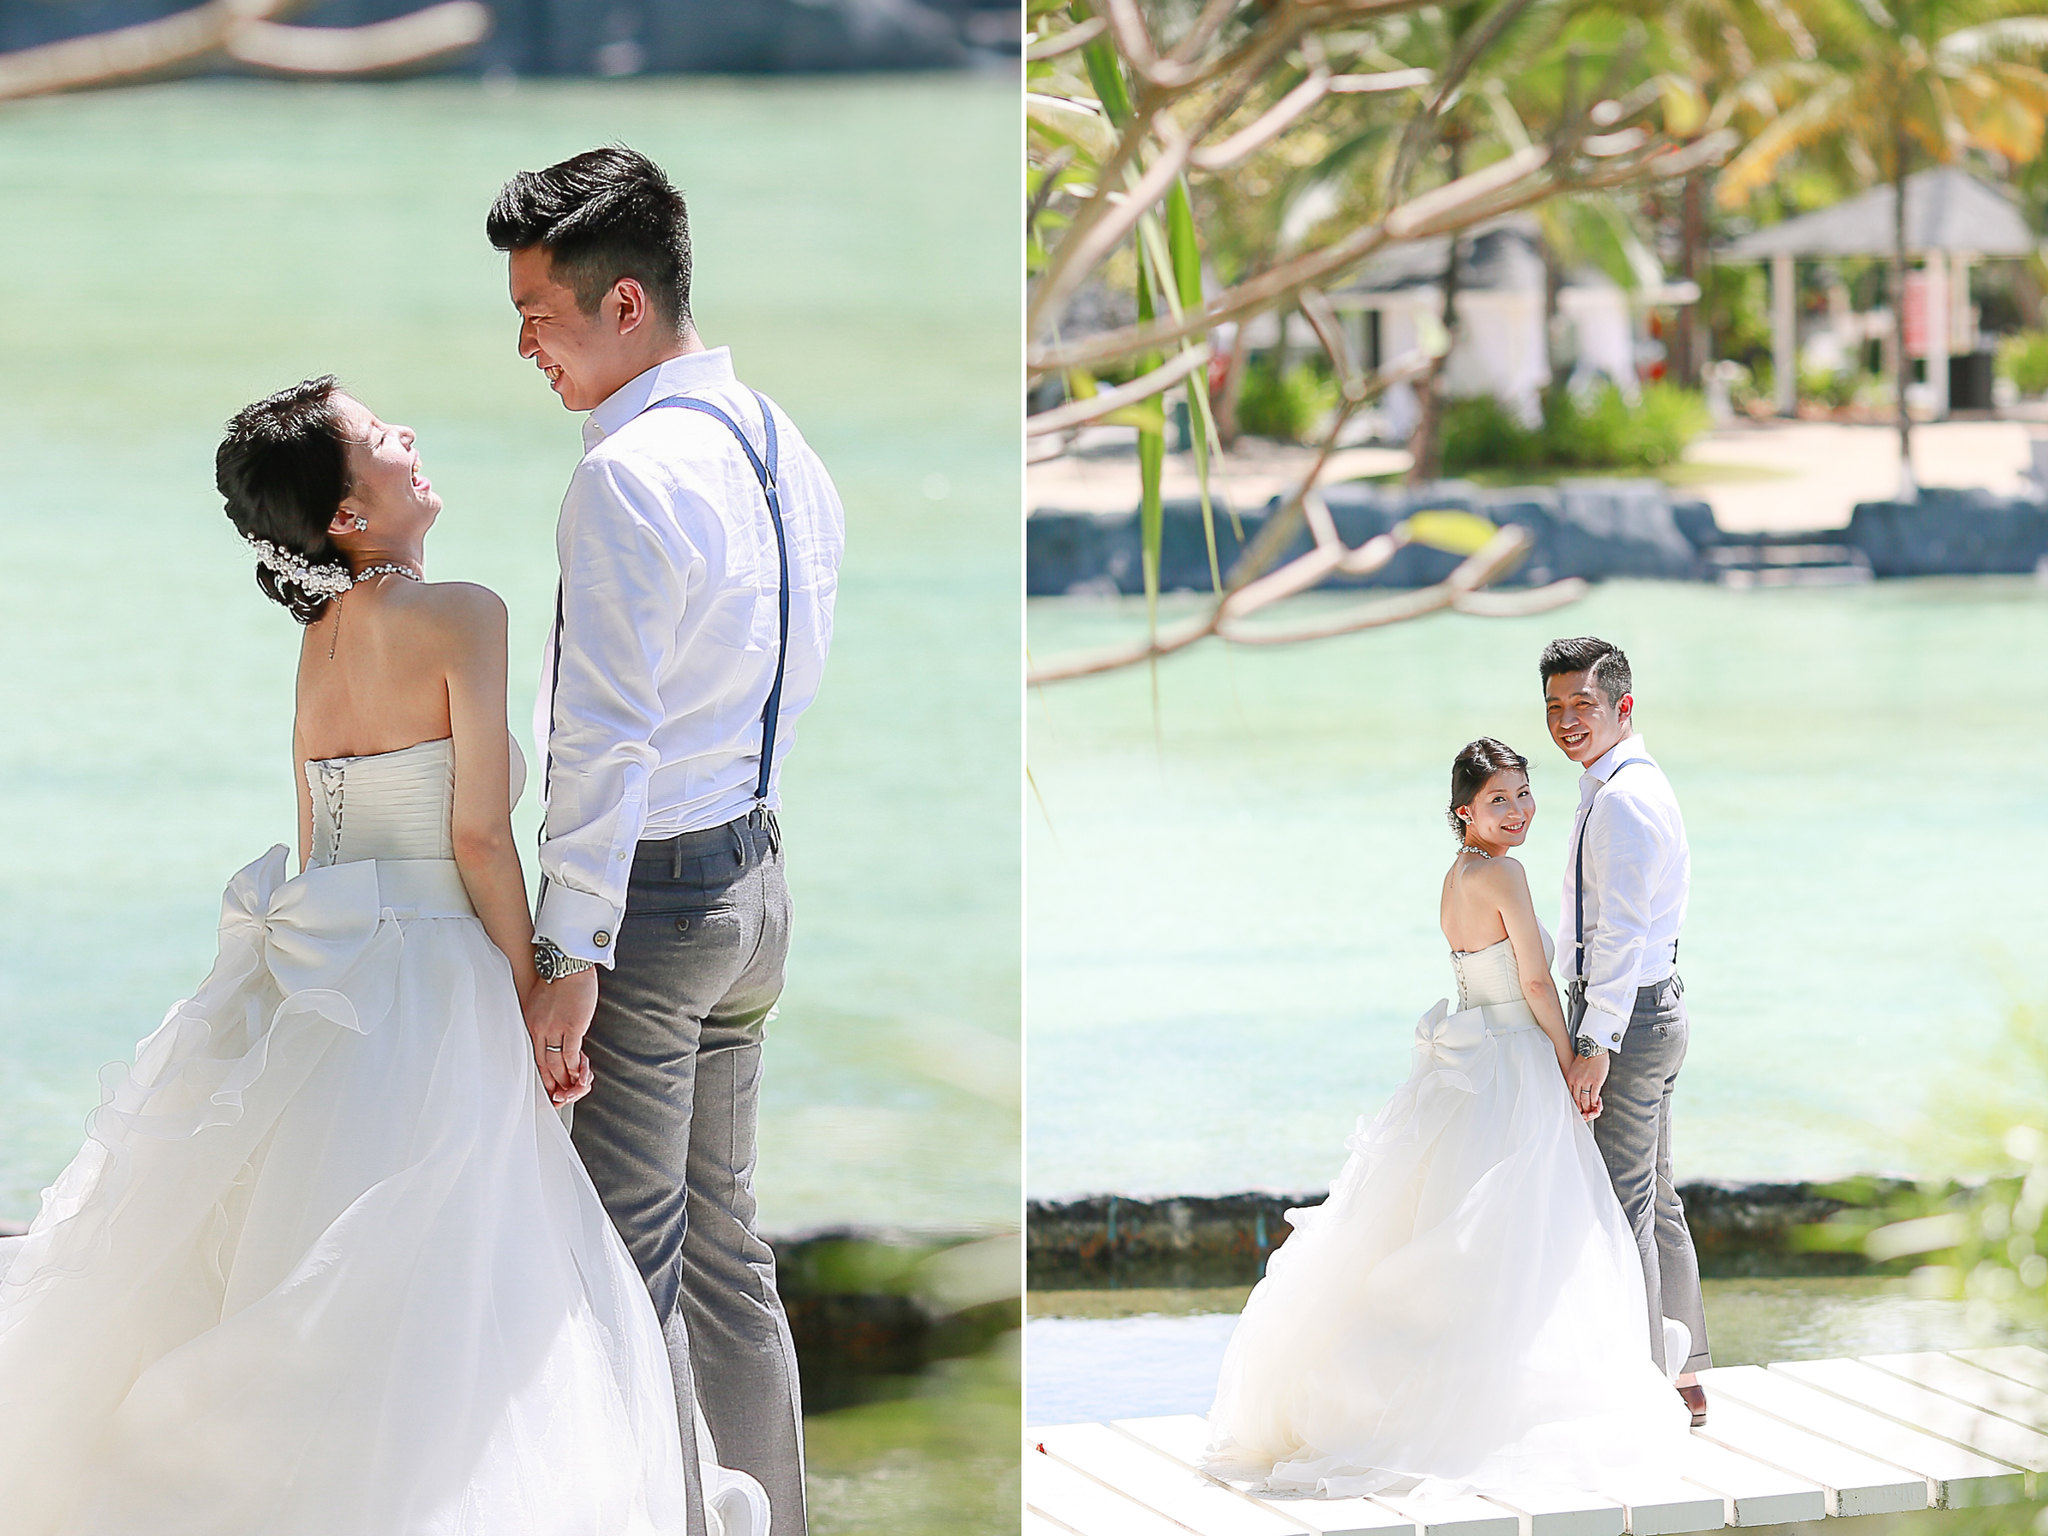 Cebu Destination Wedding Photographer, Best Wedding Photographer in Cebu